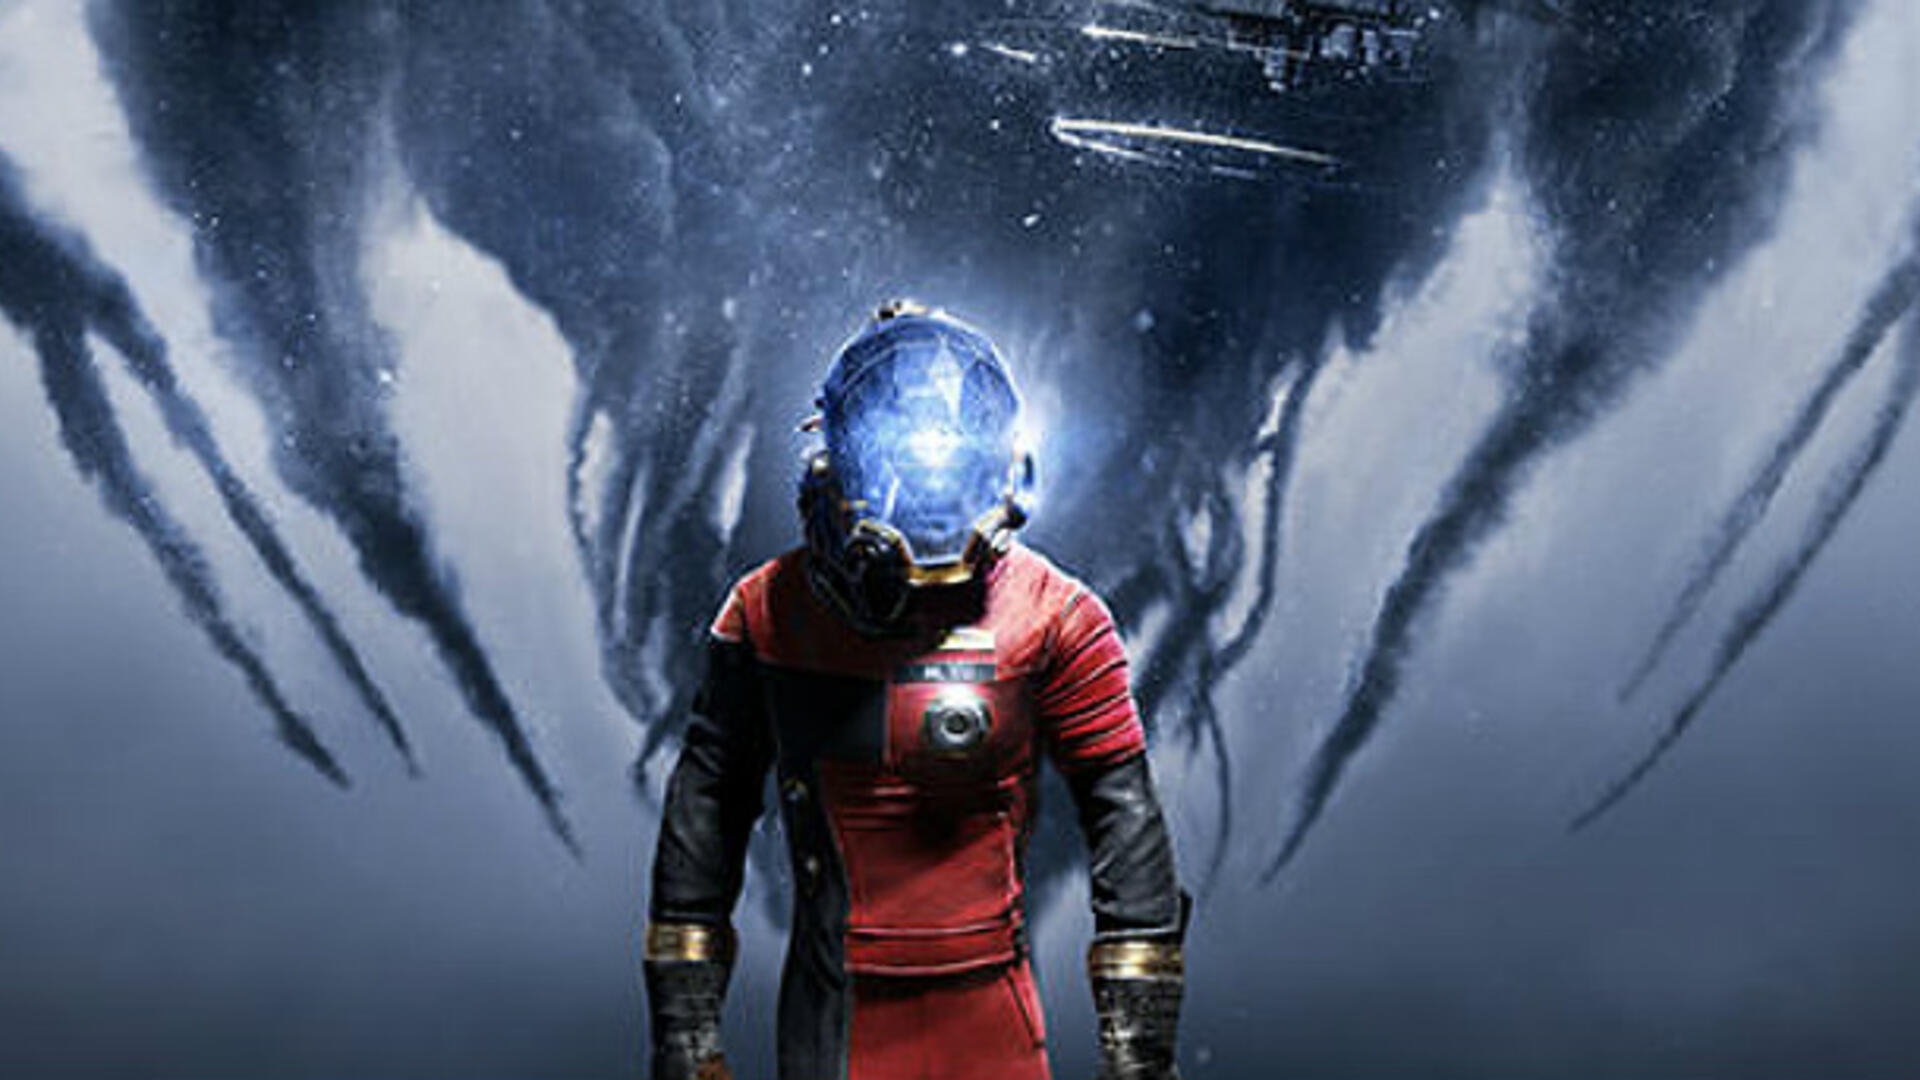 Prey Speedrunner Finishes Game in Under 20 Minutes